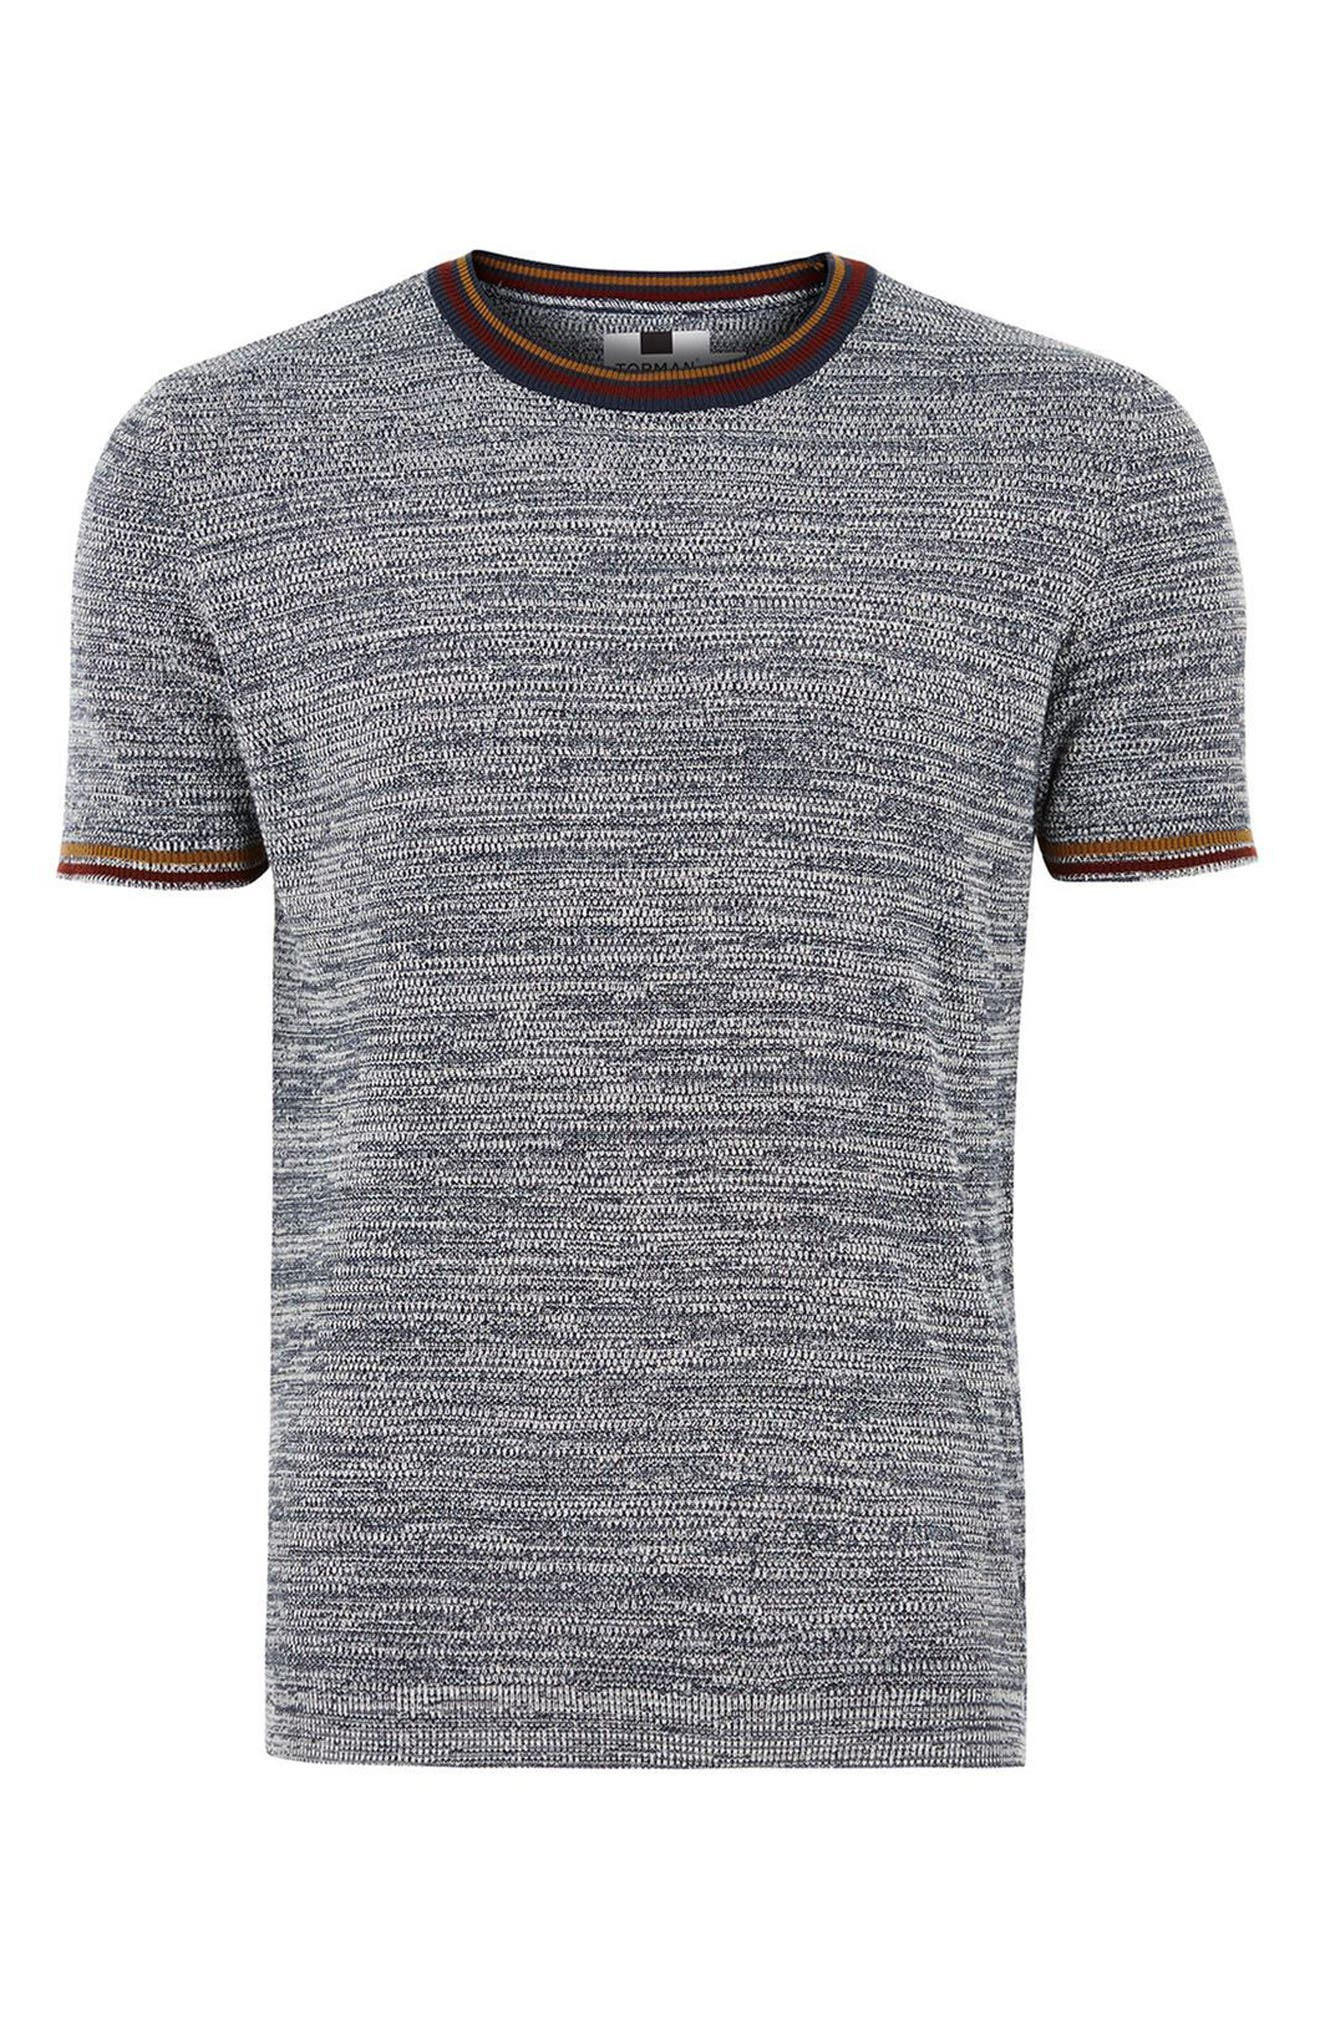 Slim Fit Knit T-Shirt,                             Alternate thumbnail 4, color,                             020